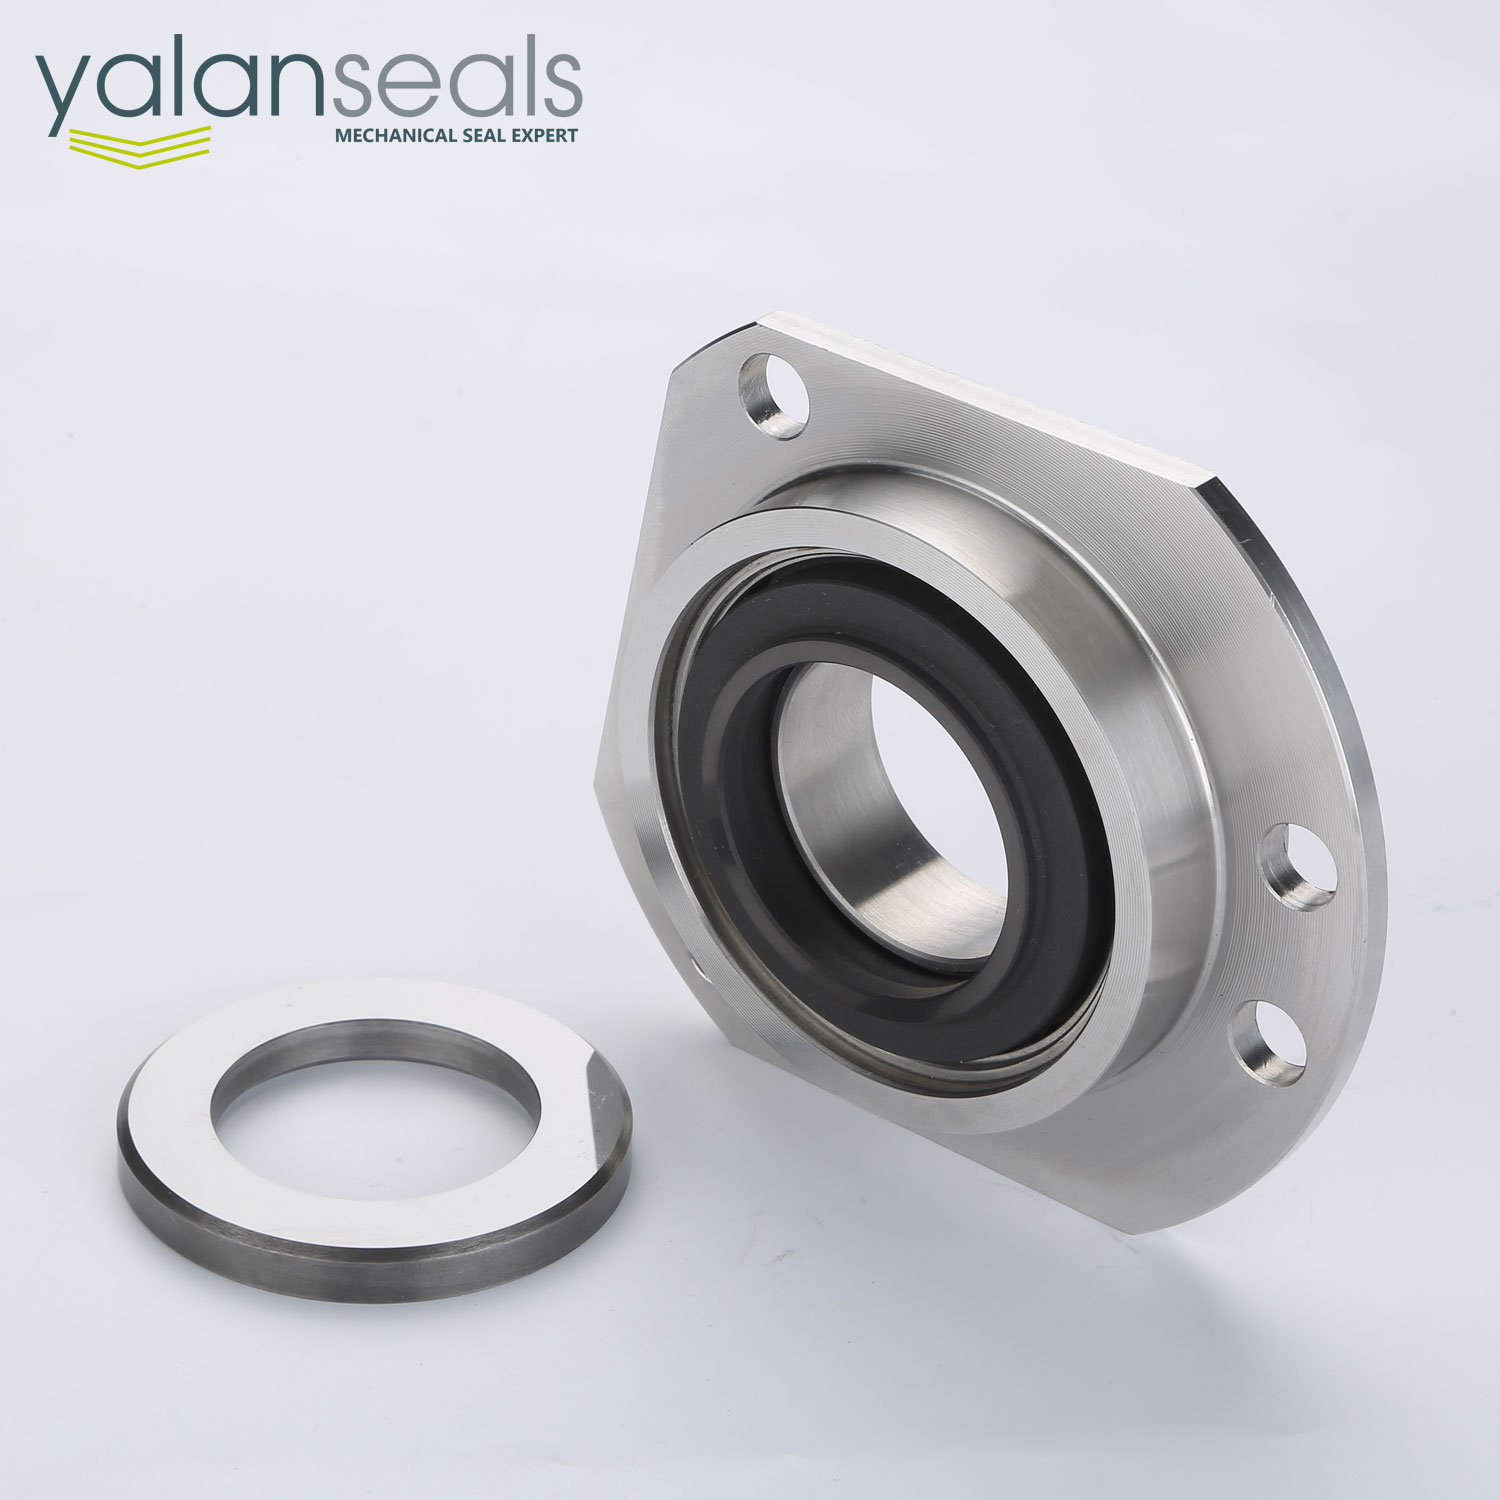 60A-51C and 60B-51B Mechanical Seal for Roots Blowers, High Speed Pumps and Gearboxes